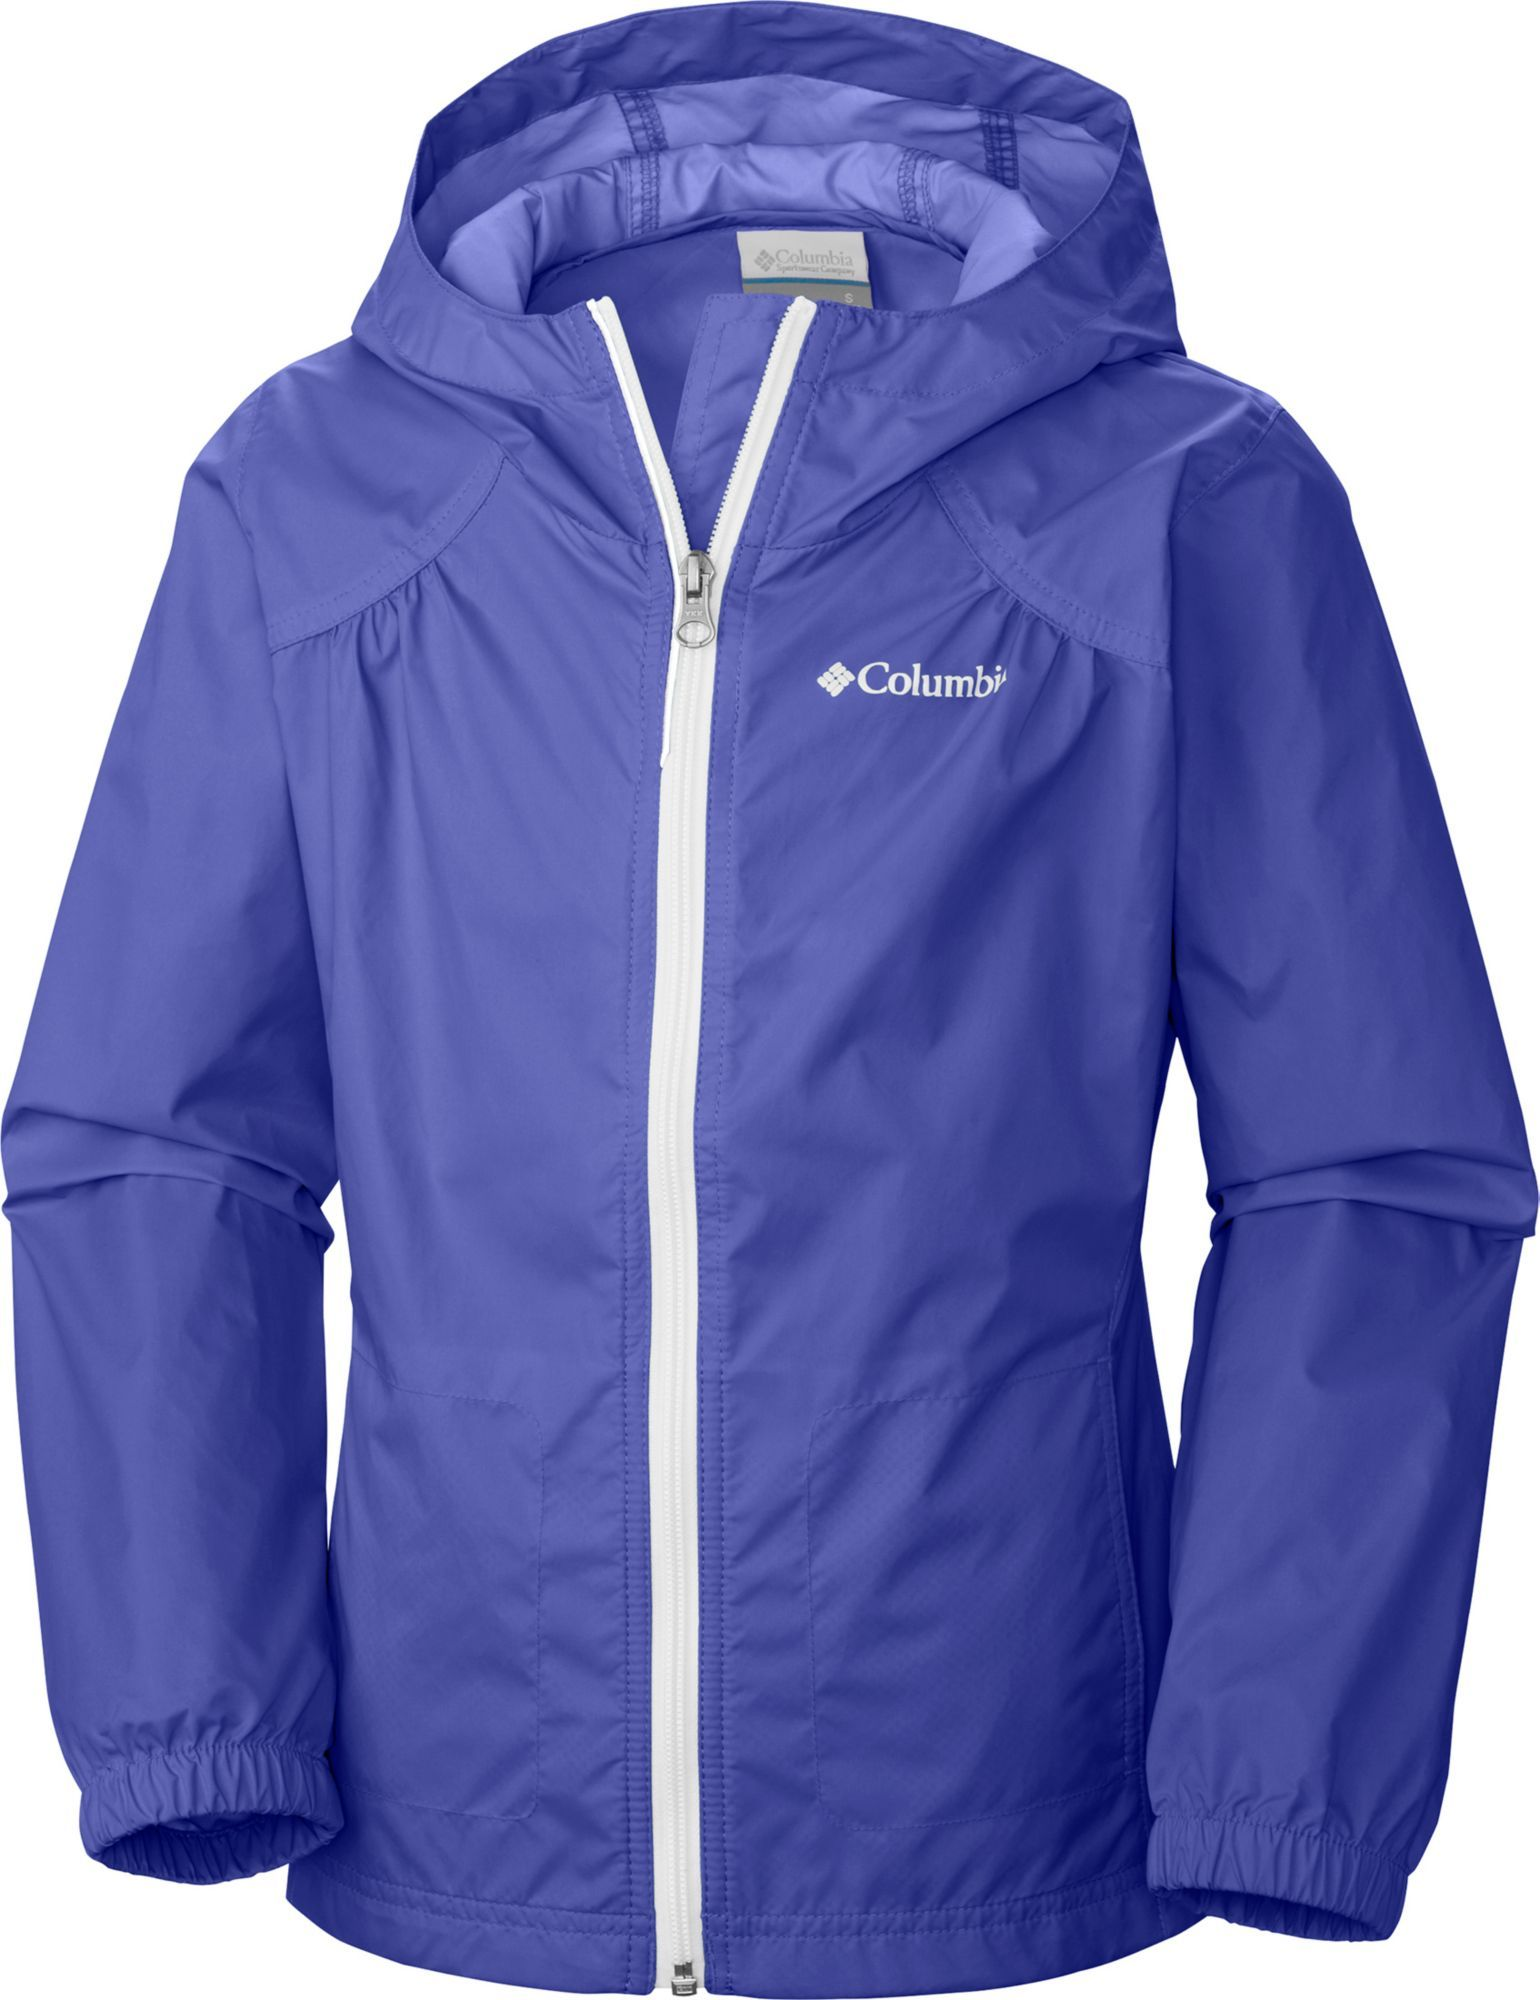 9014d178f Columbia Girls' Switchback Rain Jacket in 2019 | Products | Girls ...